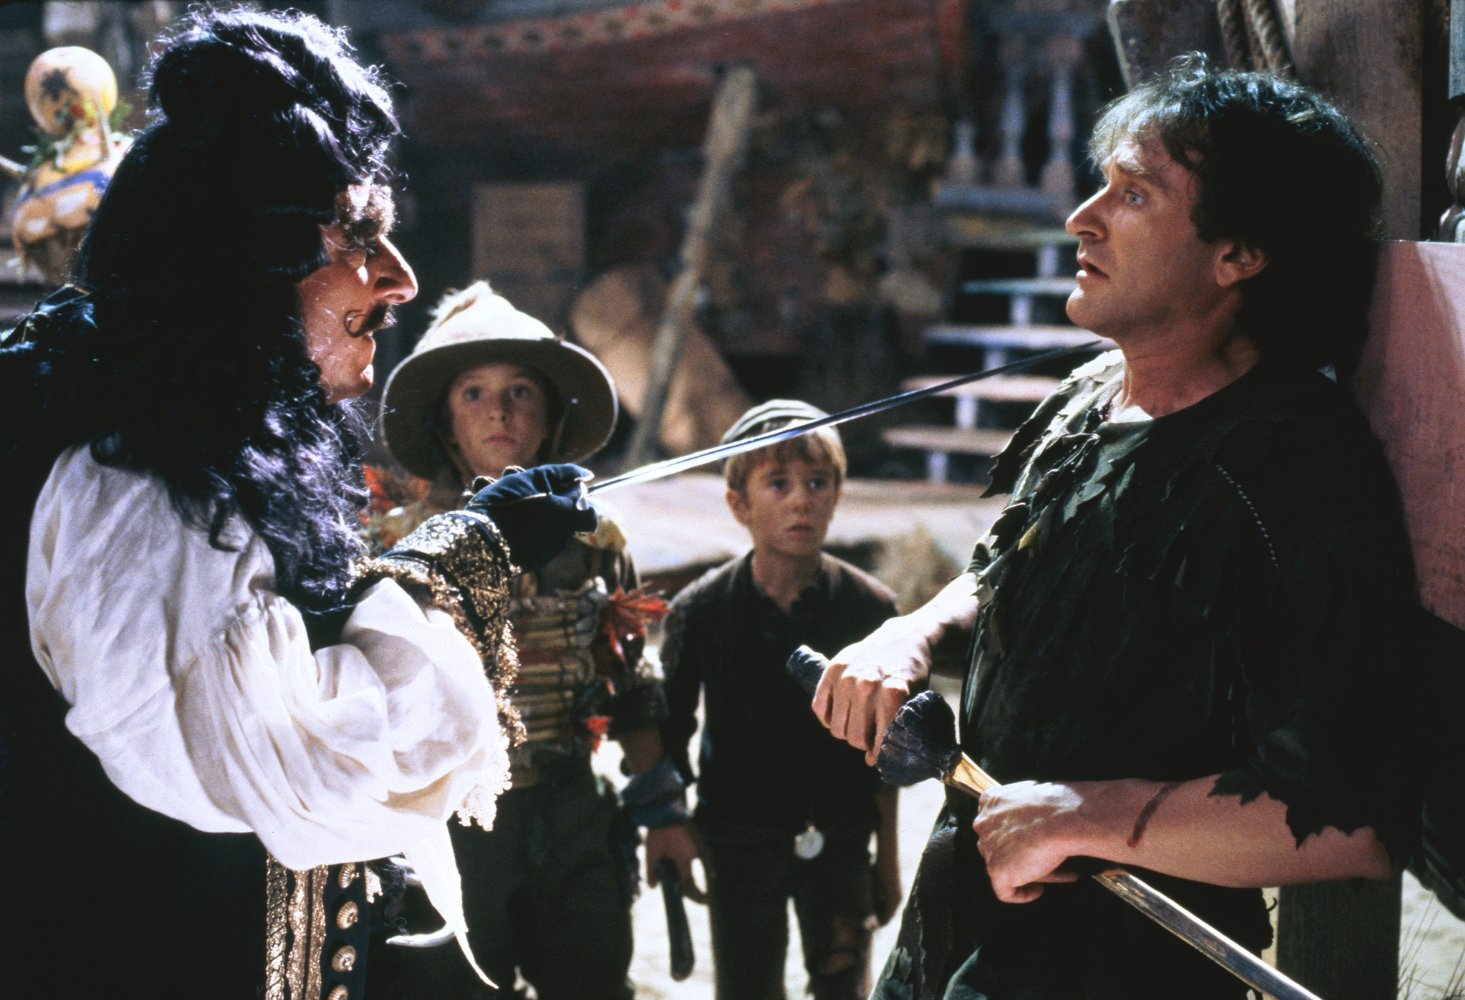 Still shot from the movie: Hook.